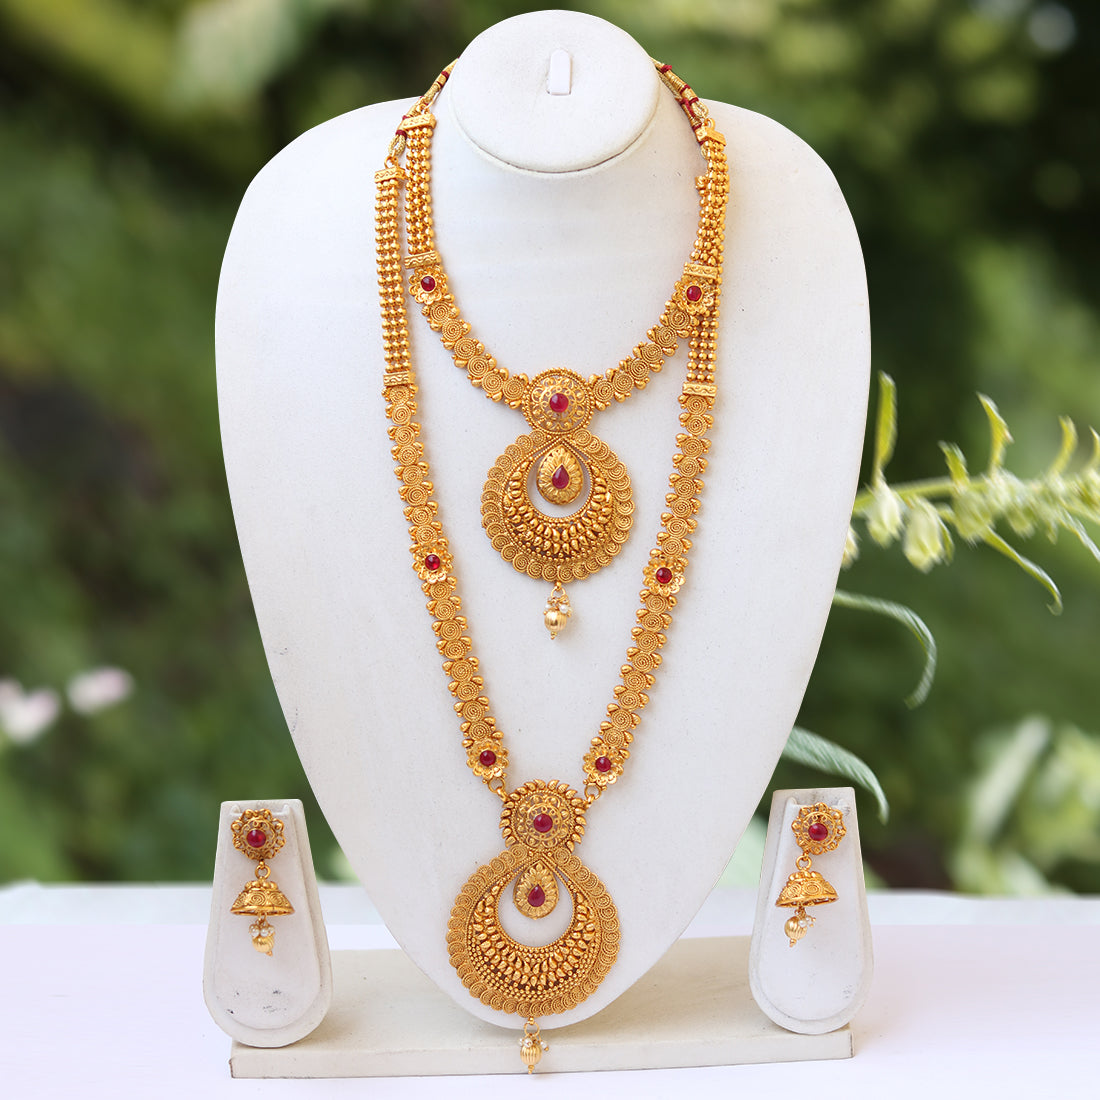 South Indian Gold Plated Ruby Haram Necklace Set Look Ethnic